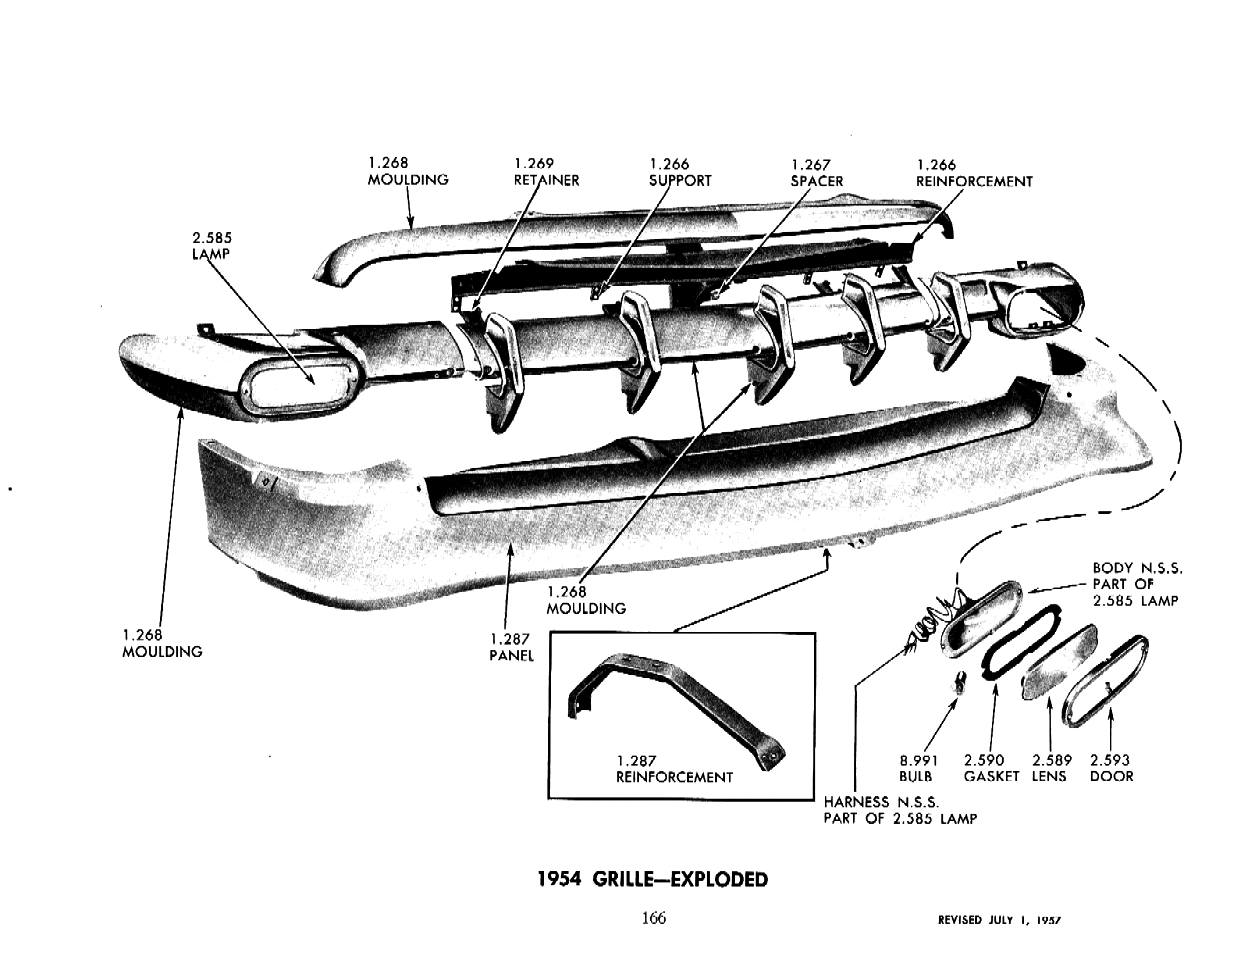 57 cadillac engine diagram  cadillac  auto wiring diagram